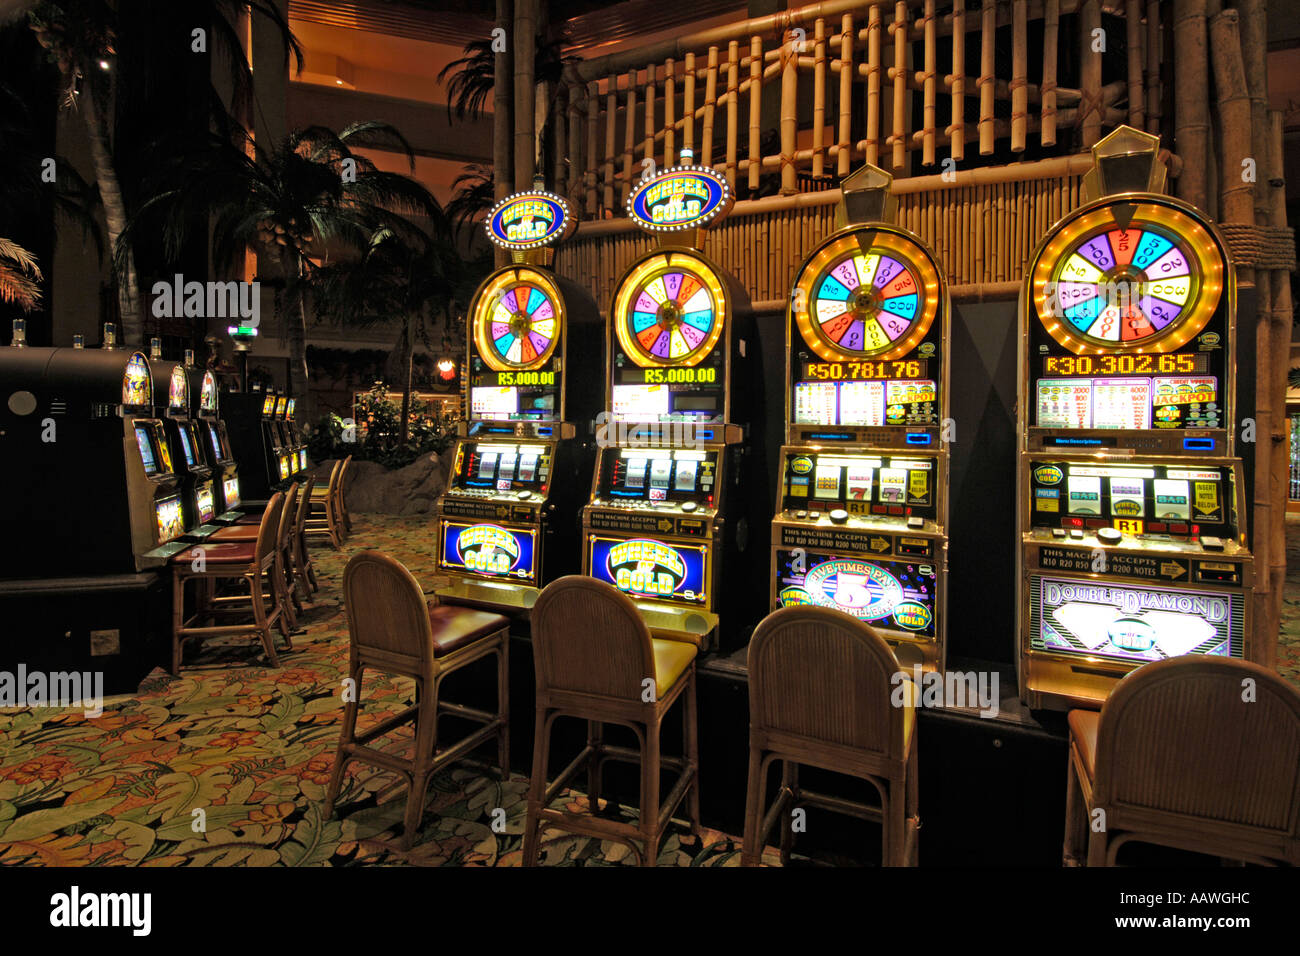 online casino slot machines south africa